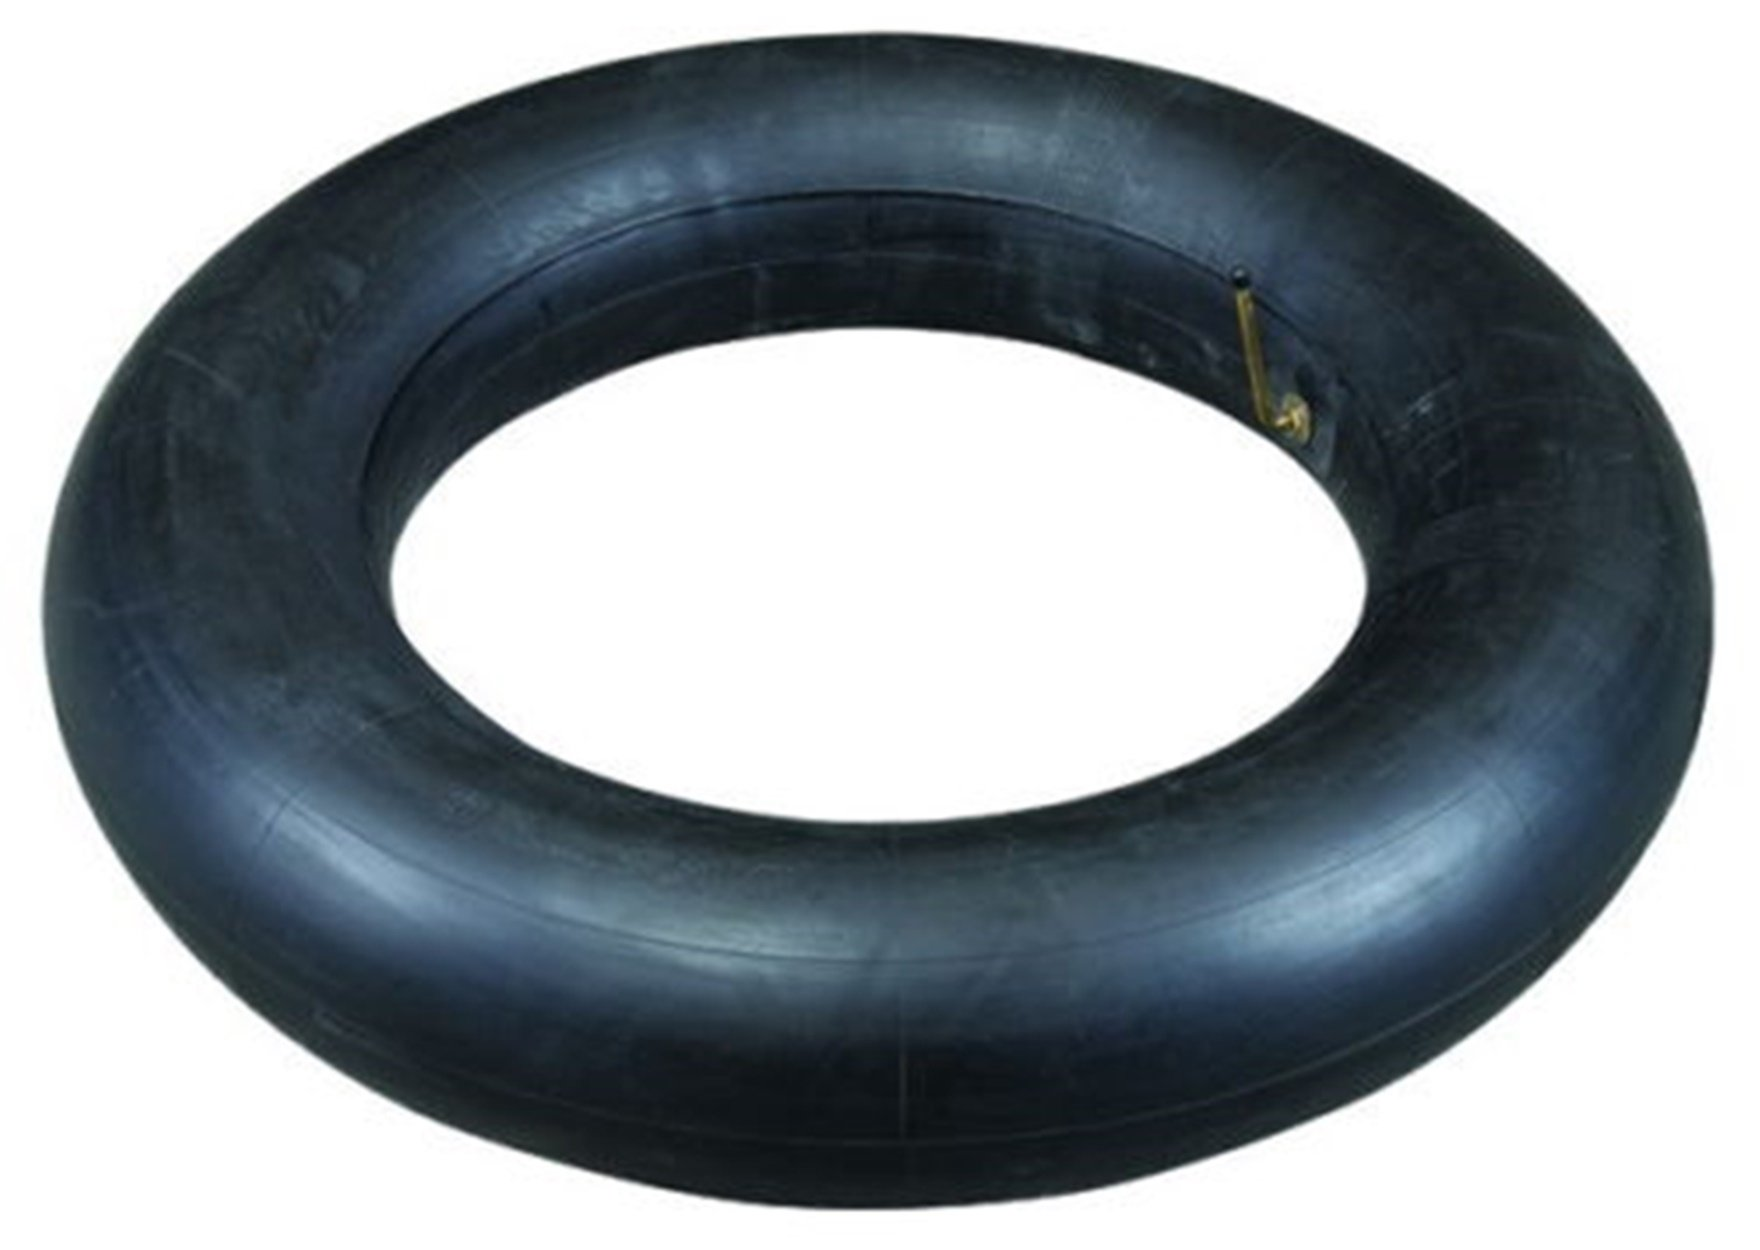 GT Brand Skid Steer Loader Tire Inner Tube 17.5R25 17.5-25 (Also fits 15.5R25) by GT